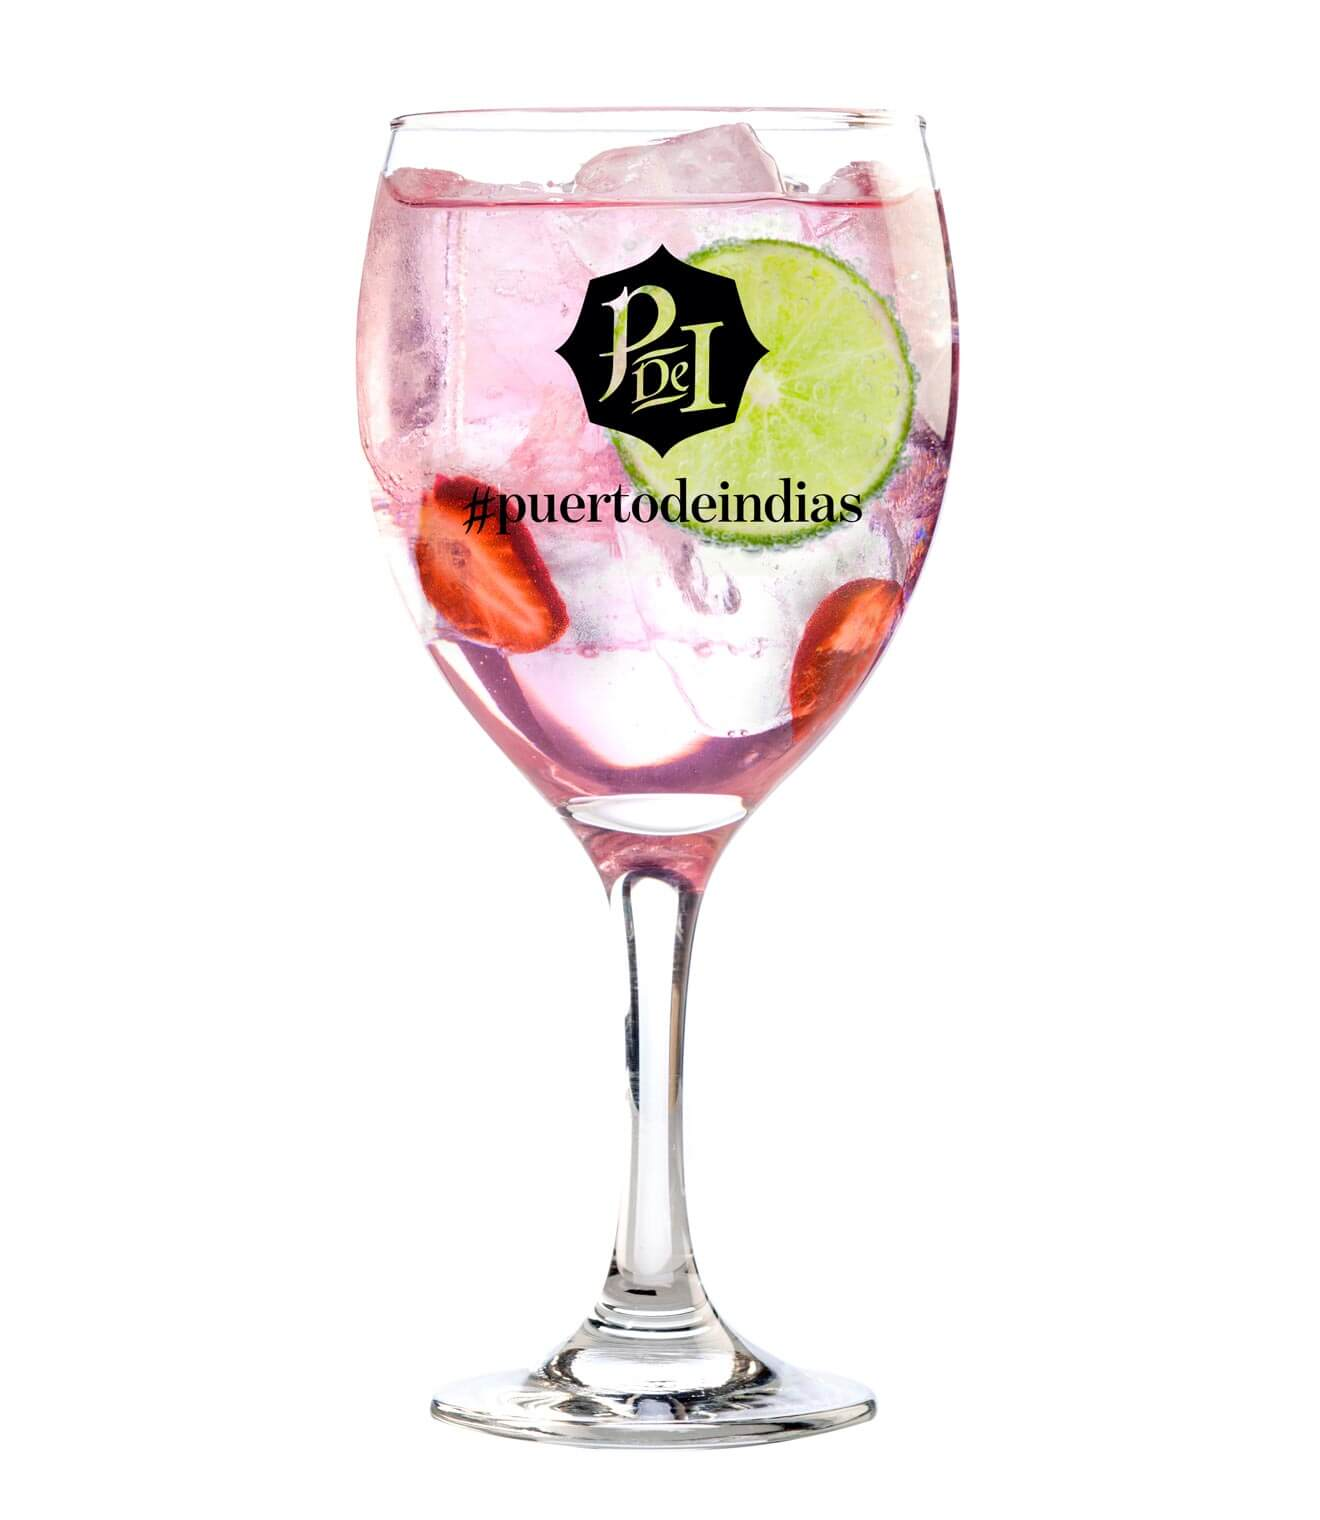 Perfect Serve Puerto de Indias Strawberry, glass with logo, on white